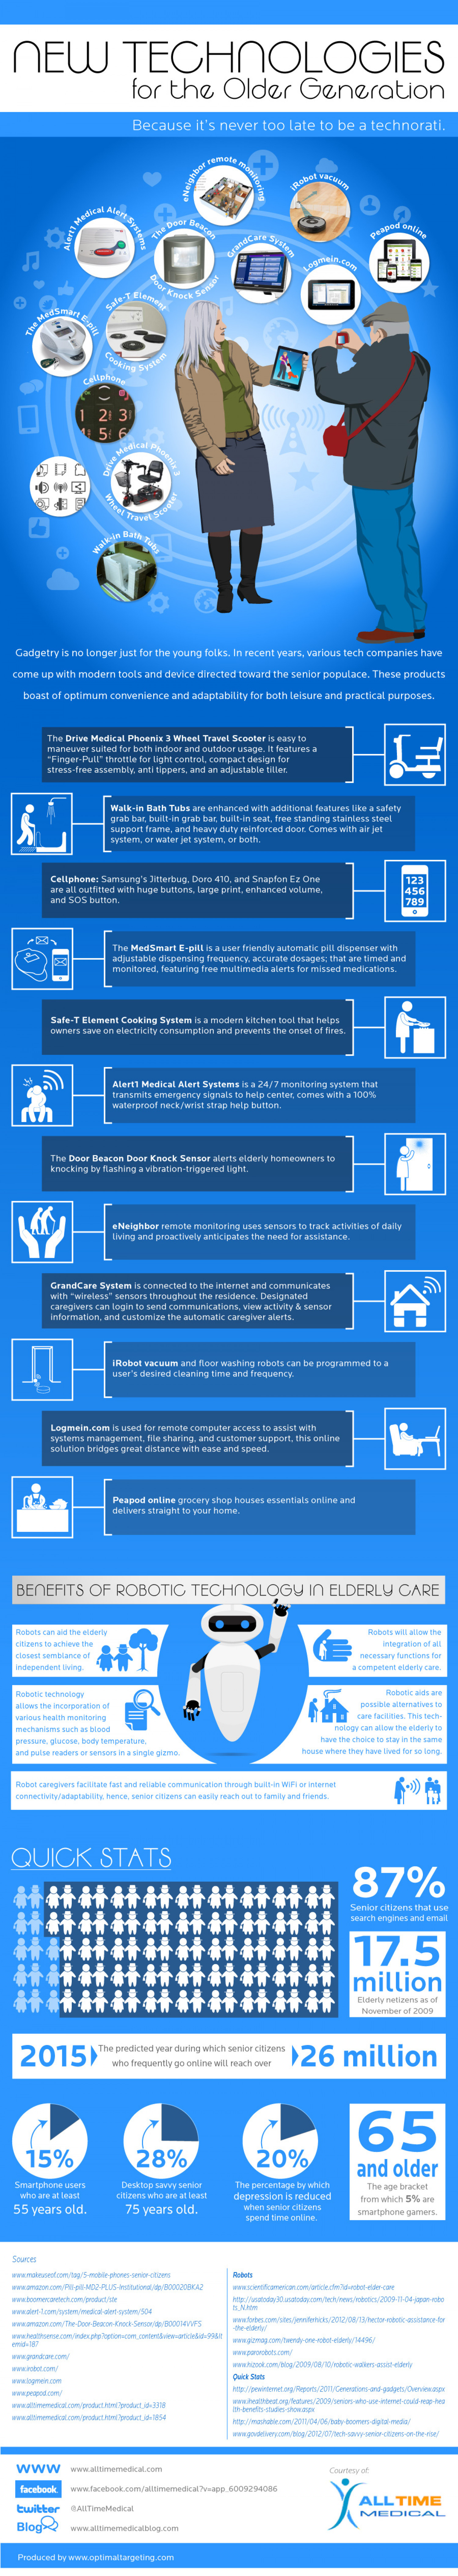 New Technologies for the Older Generation Infographic